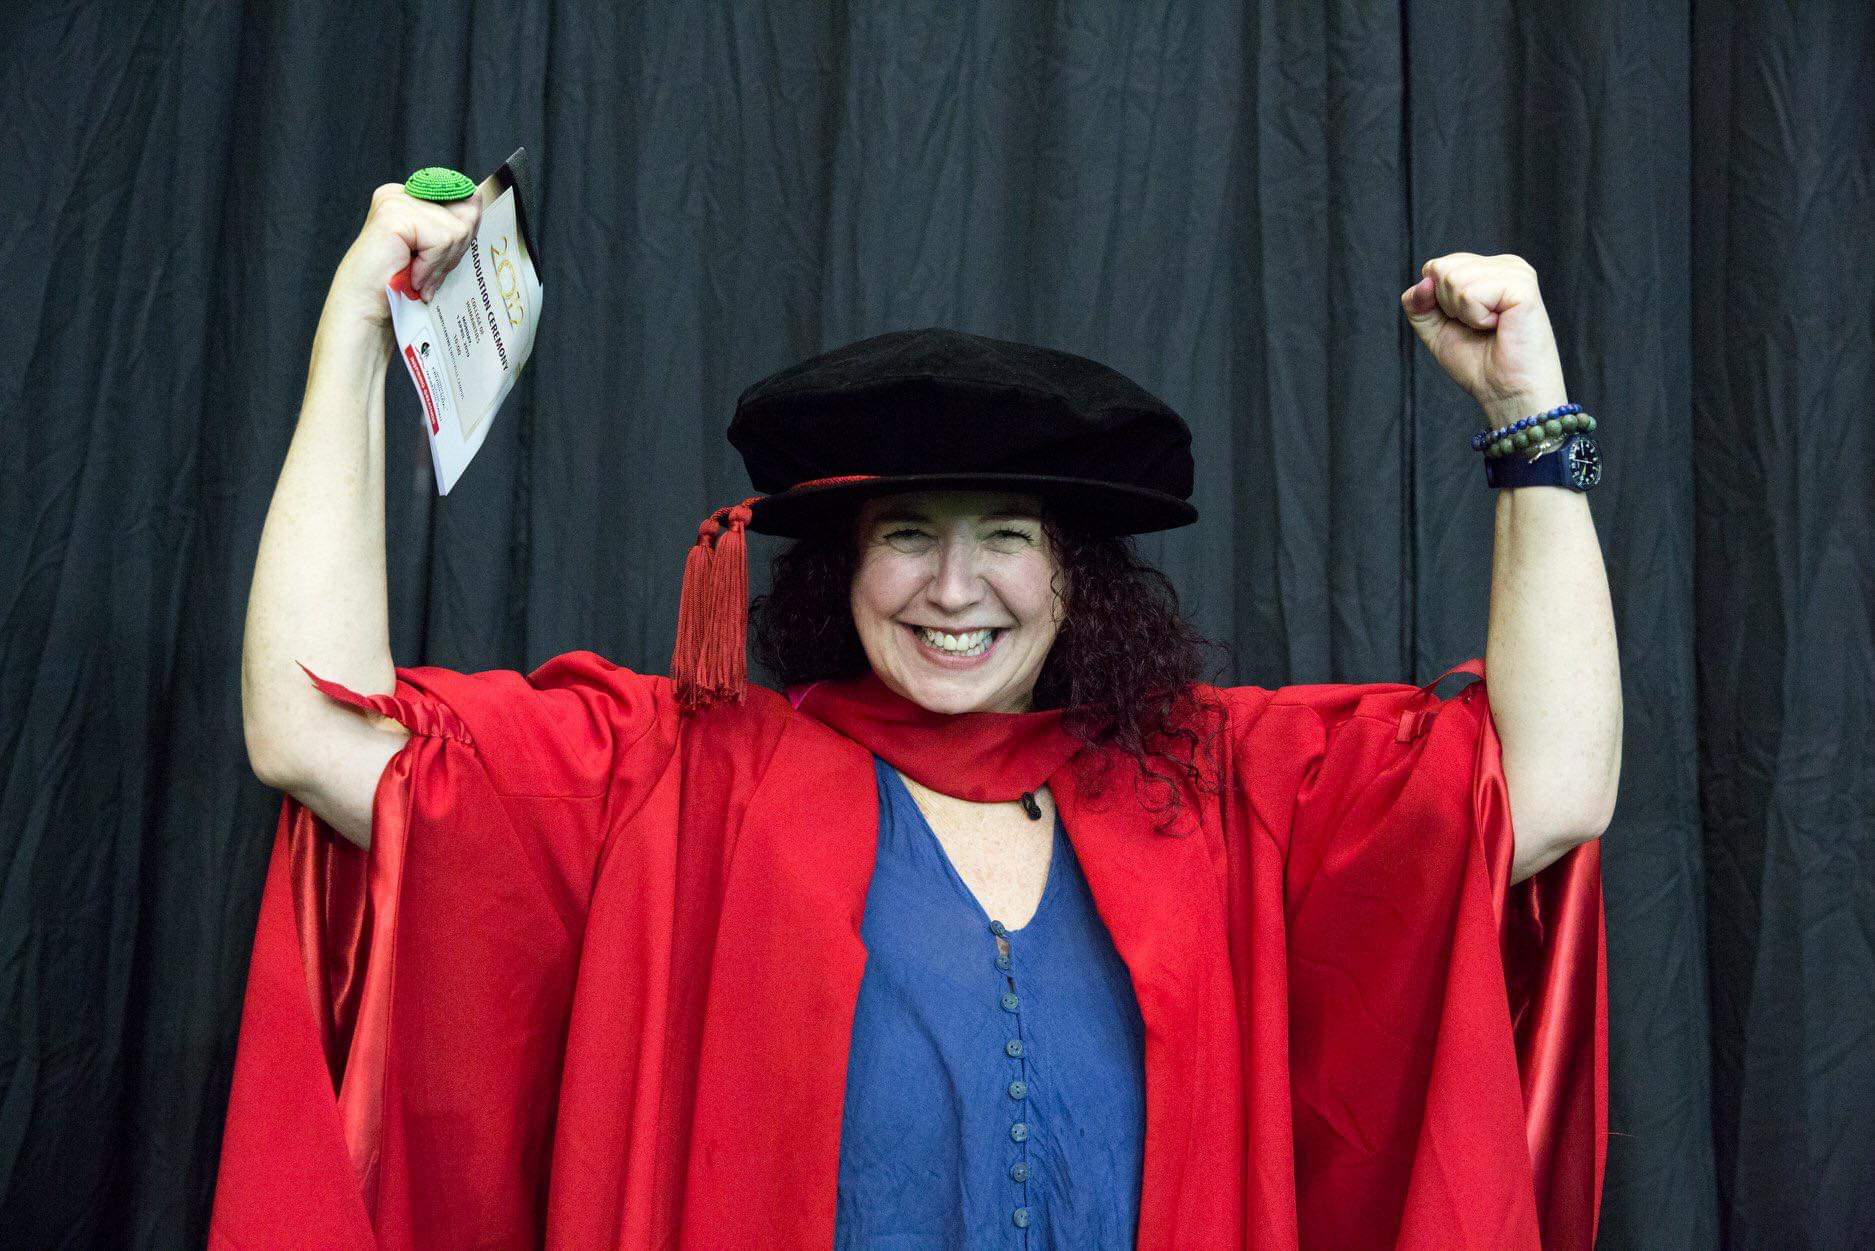 Dr Lliane Loots Rejuvenated & dancing on stage for her PhD graduation